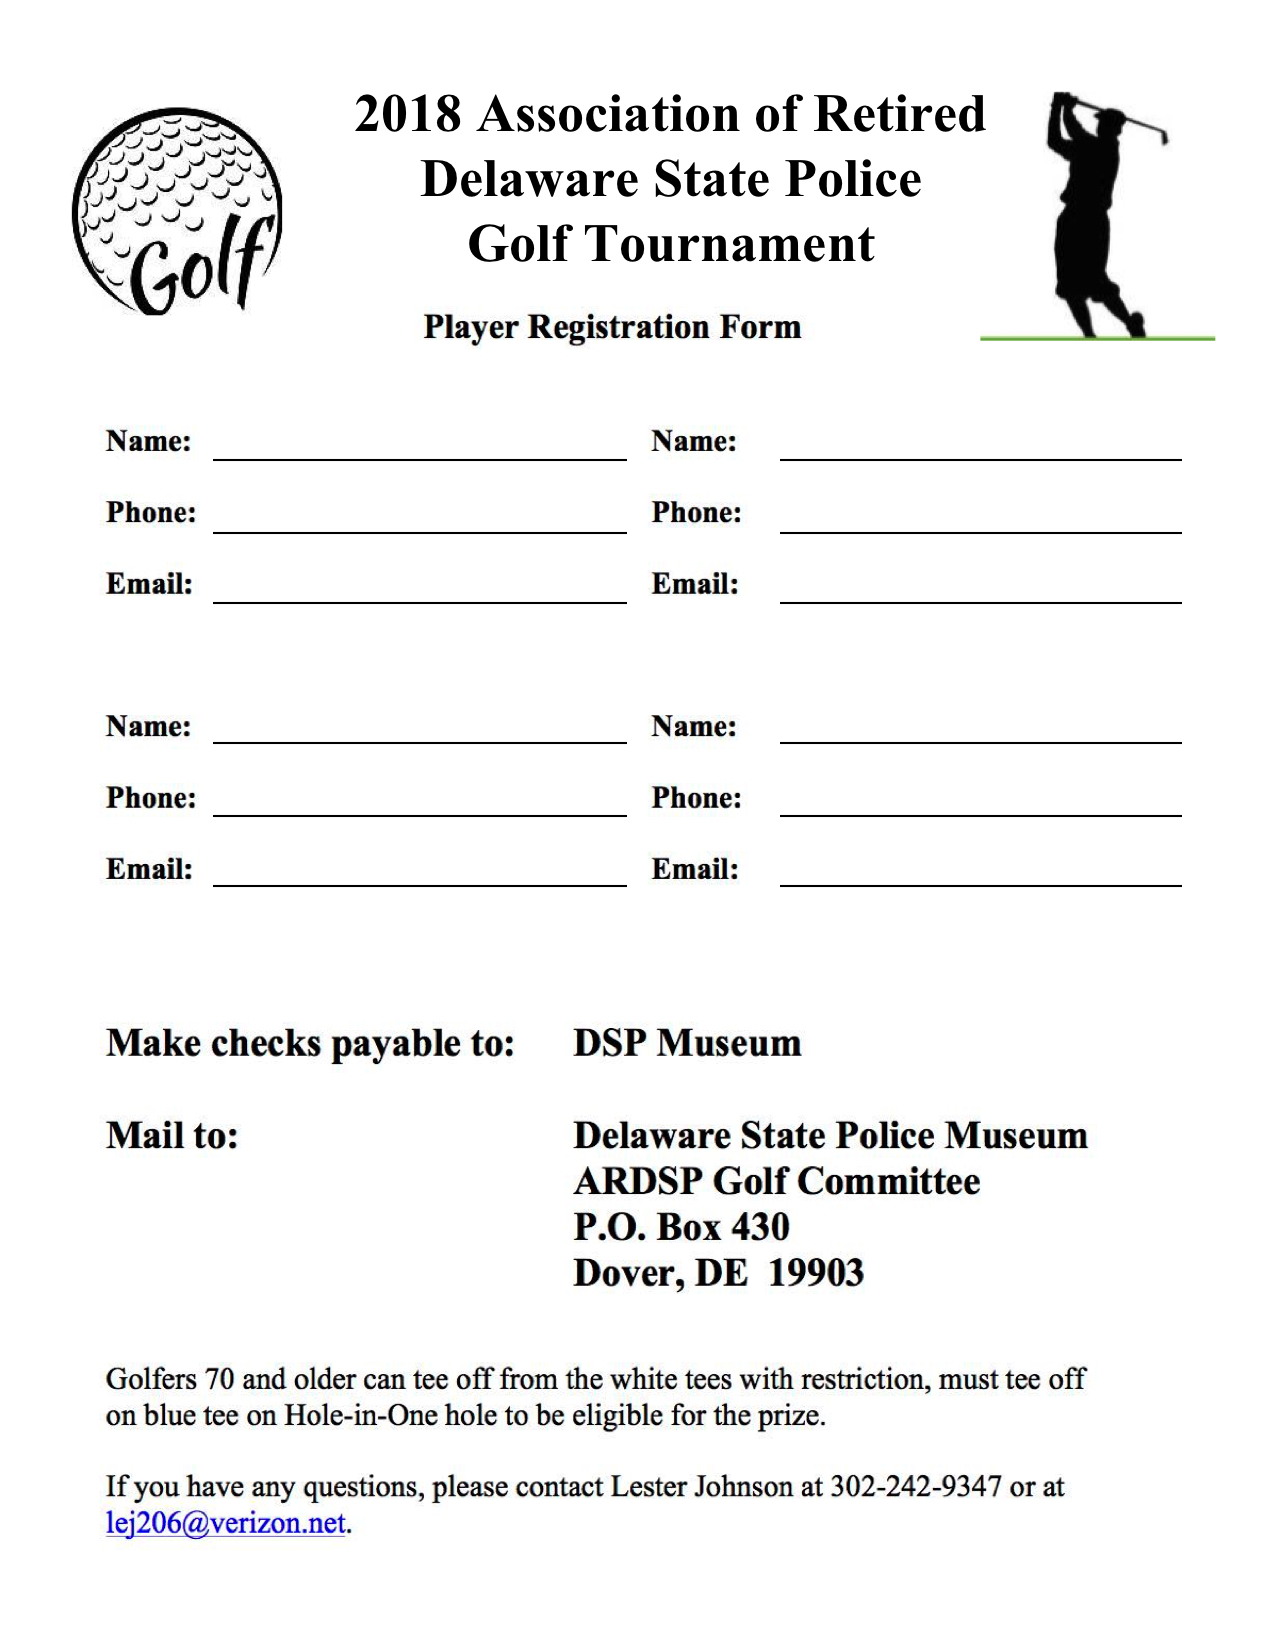 Delaware State Police Museum & Education Center Golf Tournament